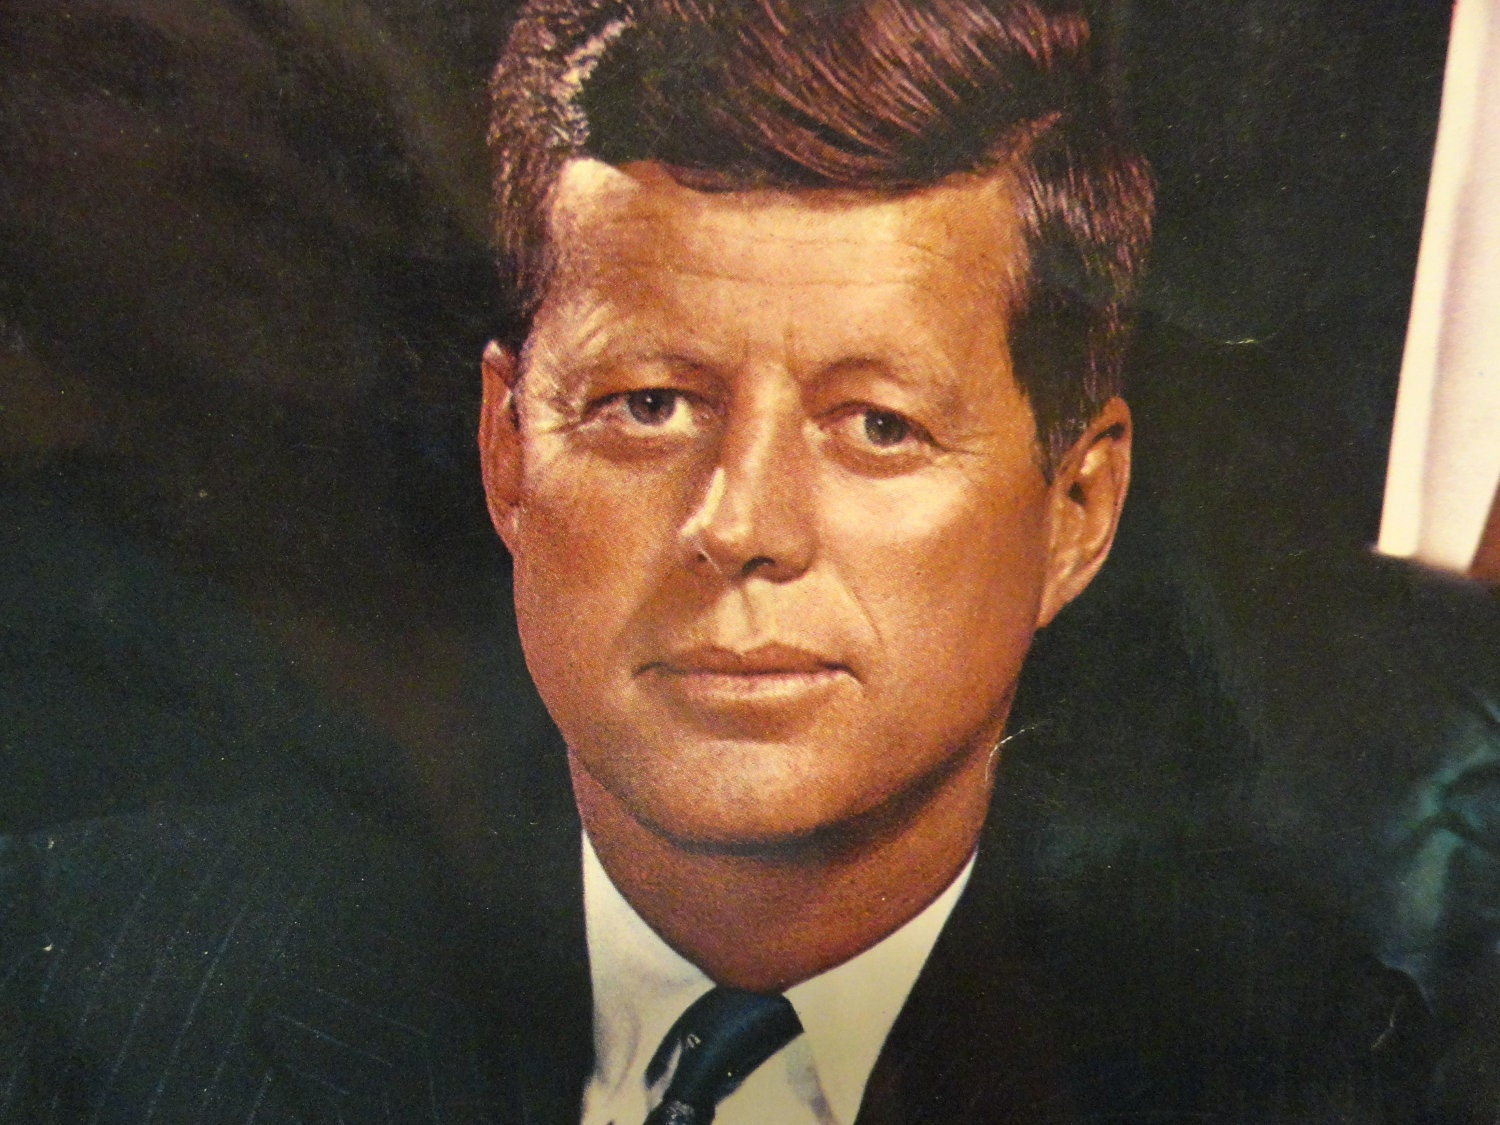 was jfk a good president essay Get started criteria for a good president paper details: the president i choosed is john f kennedy please answer these questions about him: 1 explain john f kennedy's criteria consensus for good president-demonstrated by a spectrum 2 characteristics of background information that would be.